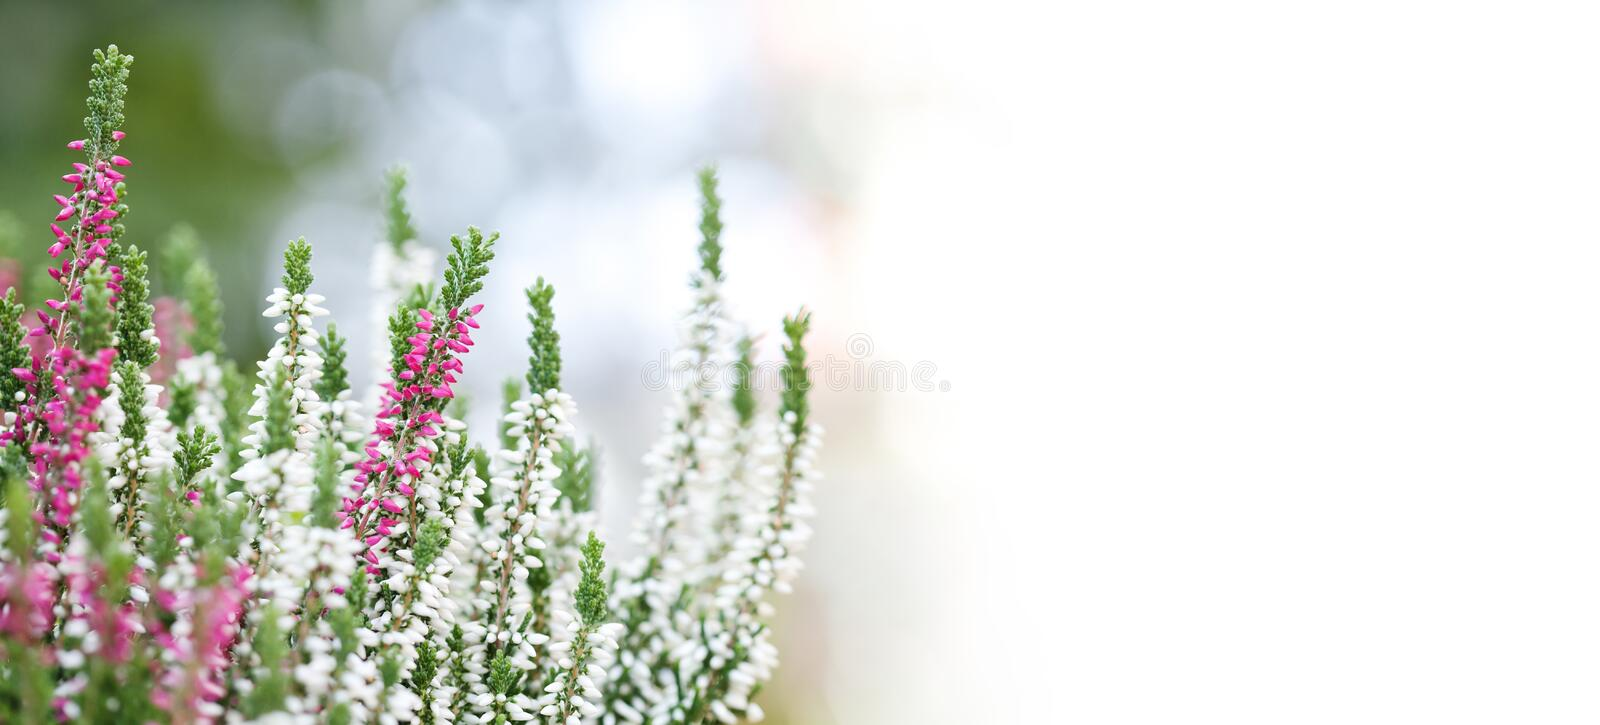 White violet Heather flowers field Calluna vulgaris. Small pink lilac petal plants, shallow depth of field. Copy space.  royalty free stock photos